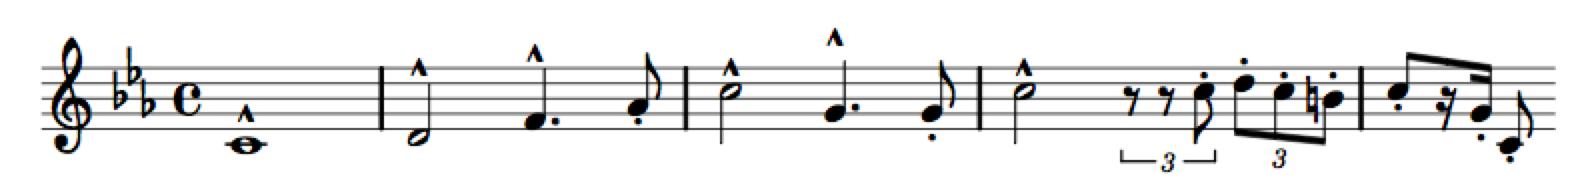 MahlerSecondSymFirstTheme.png